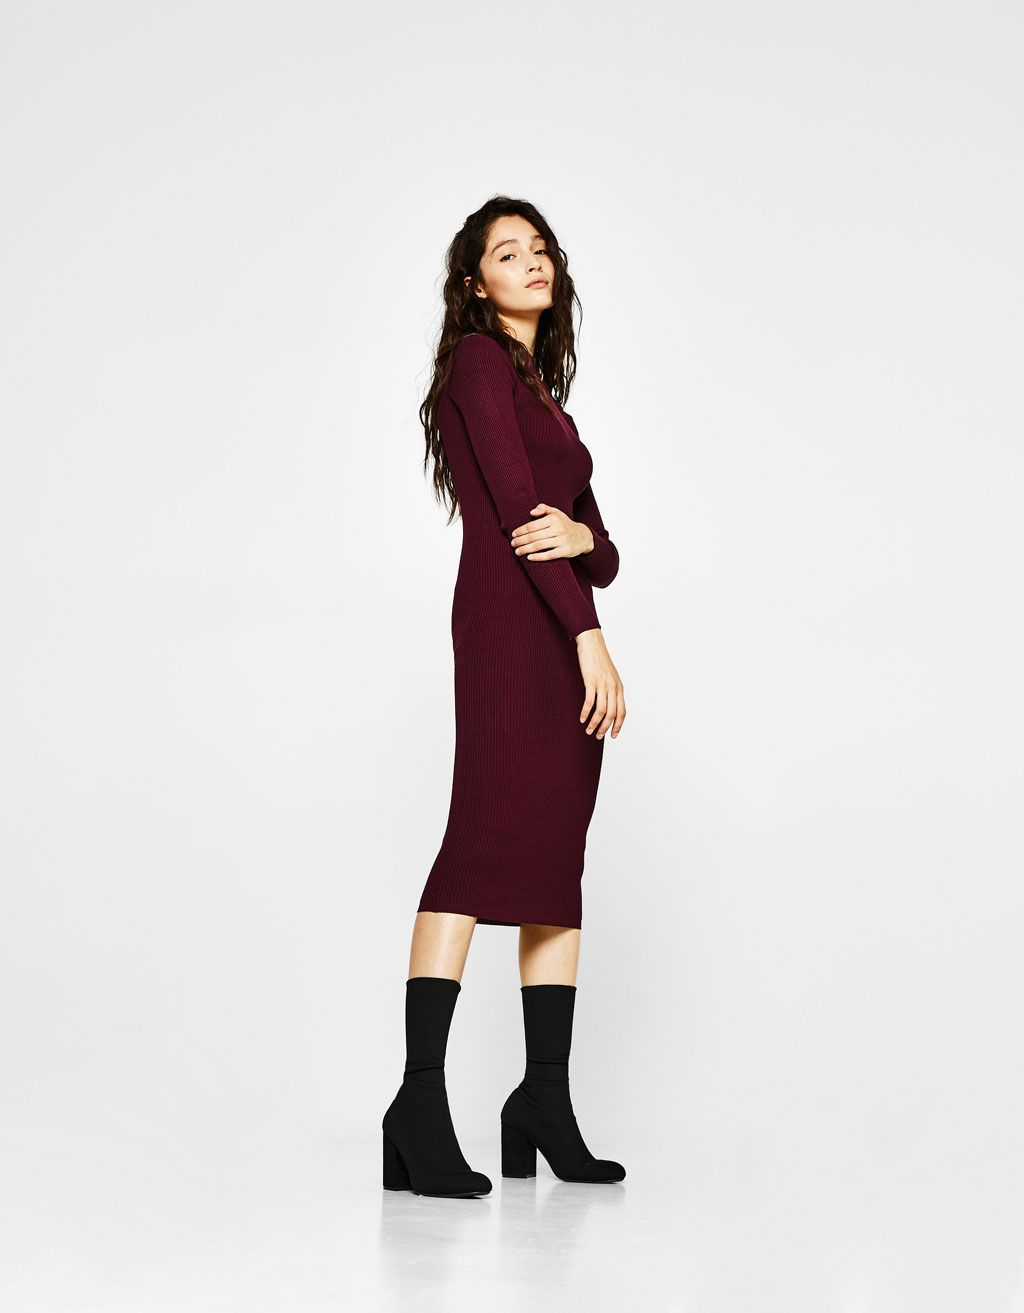 a14d008120df1f Bershka United States - Ribbed dress with button neck